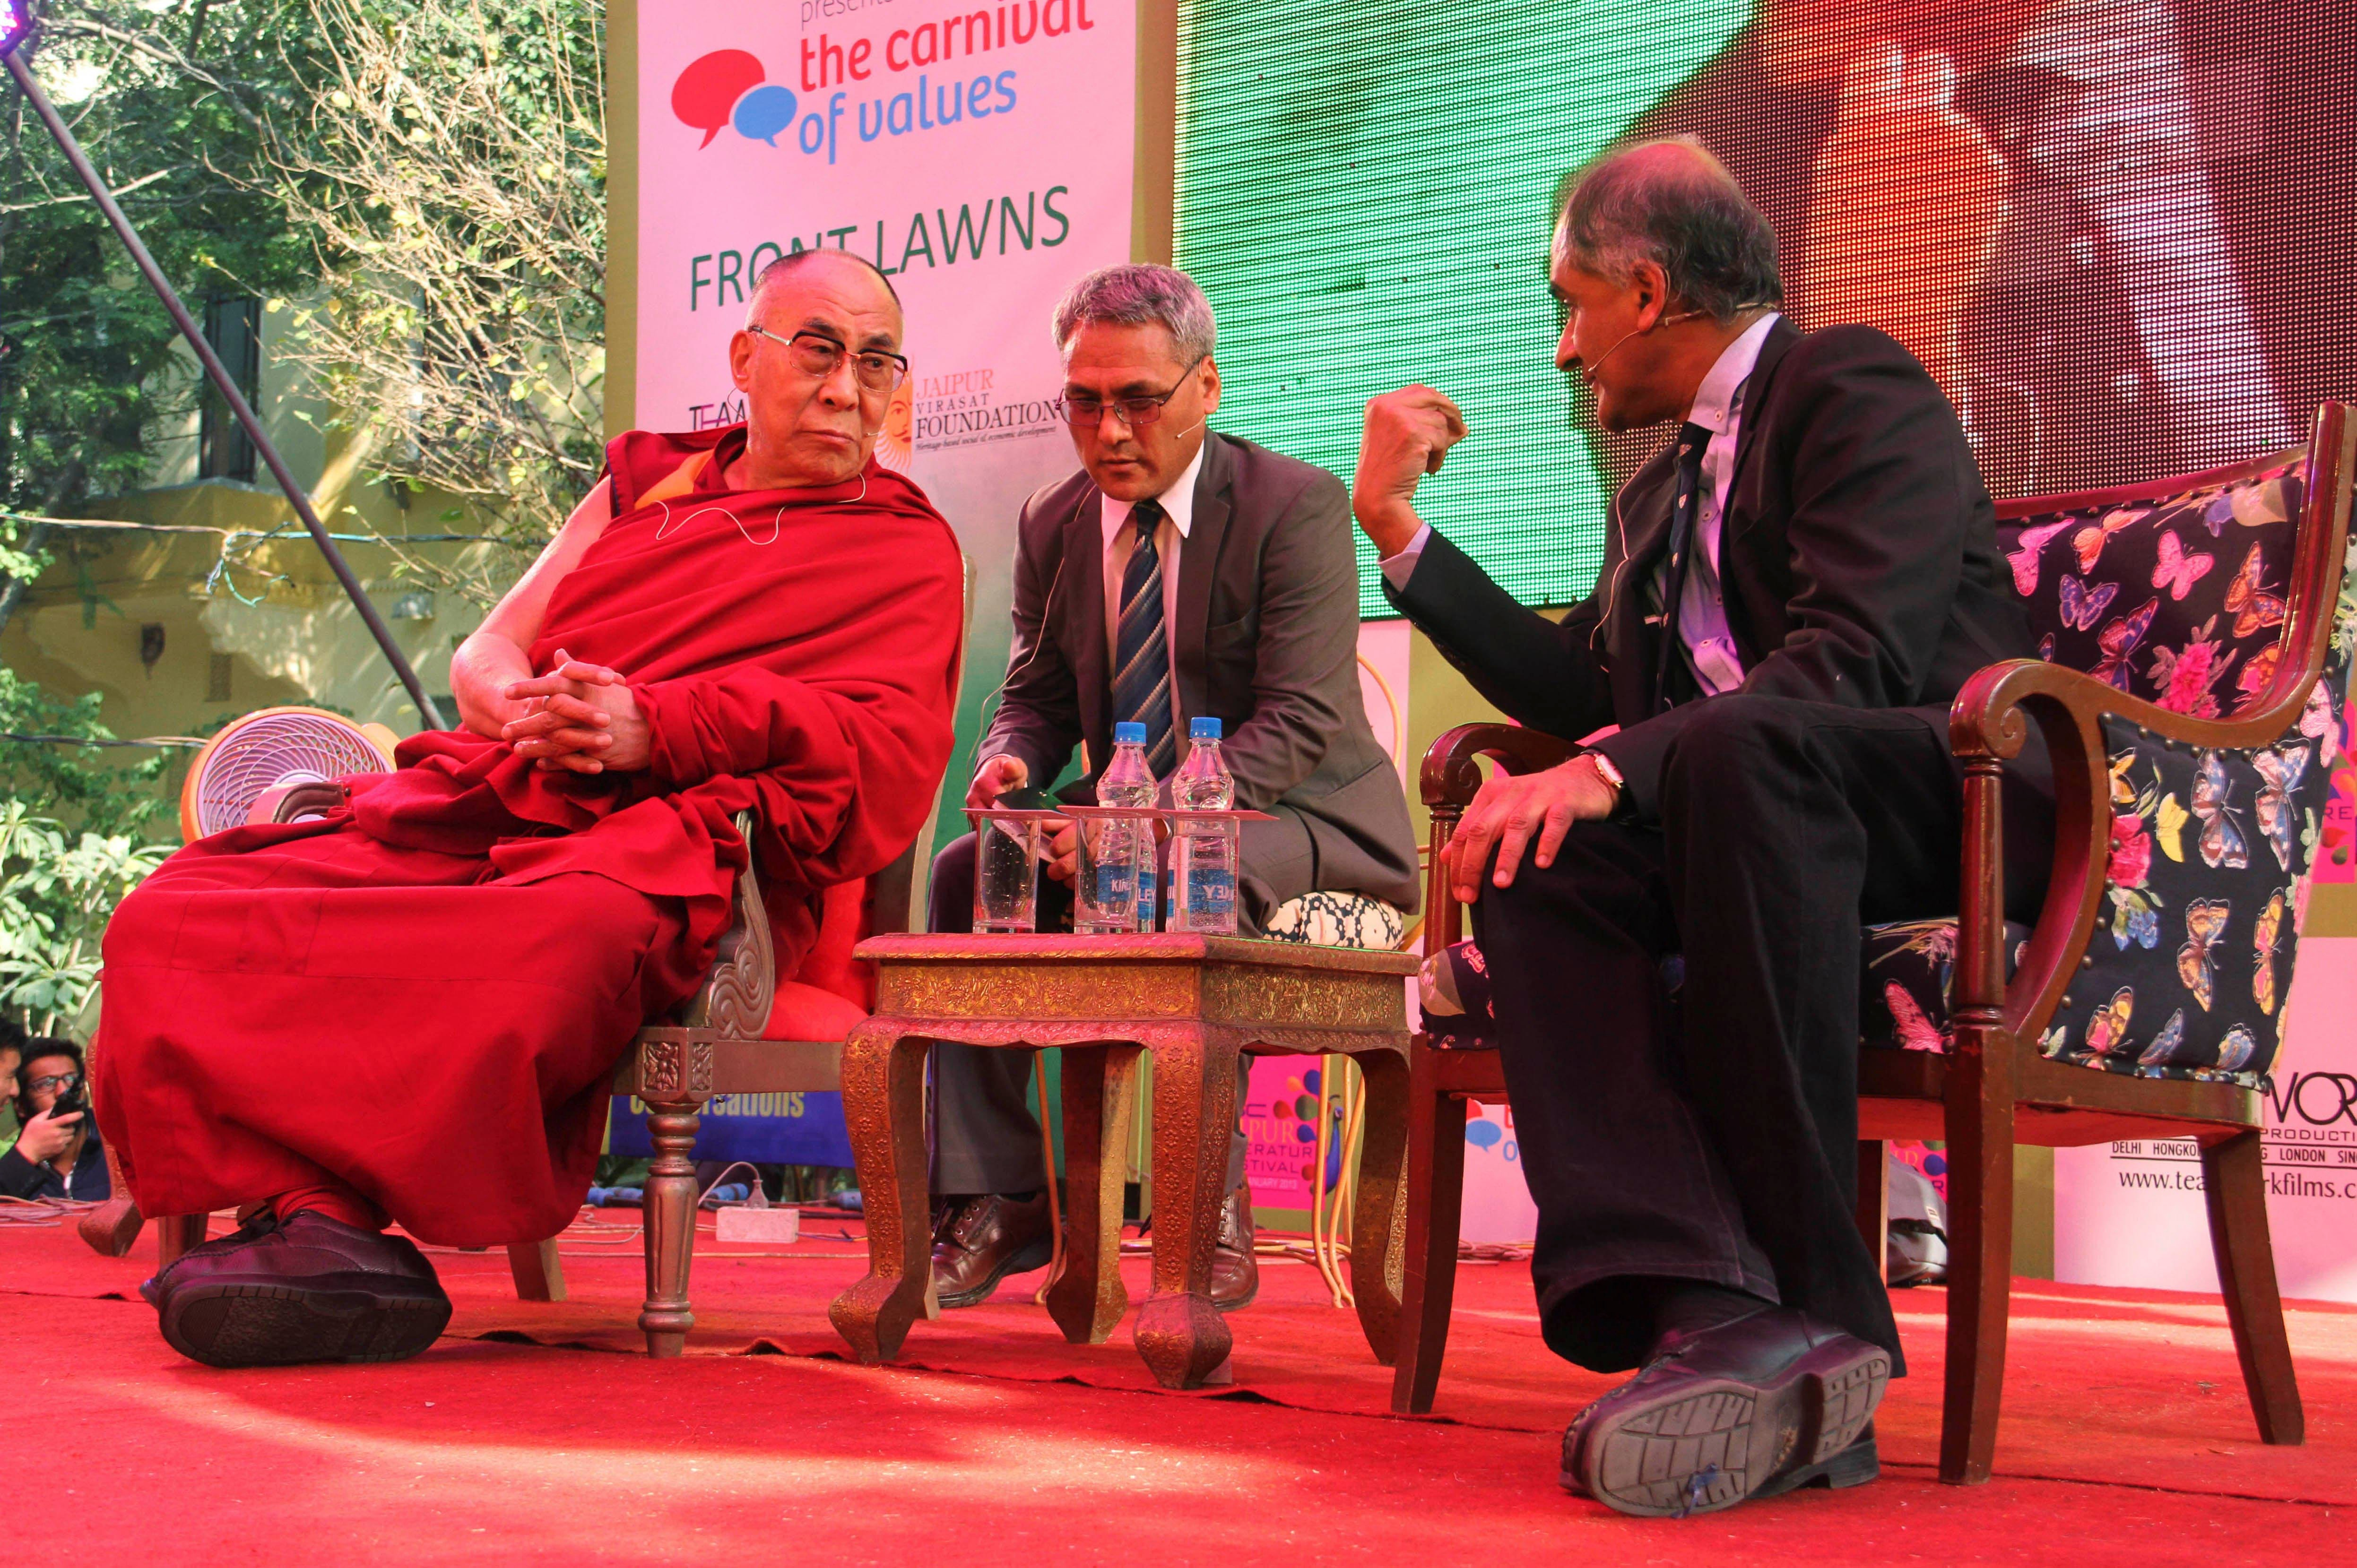 The Dalai Lama, Pico Iyer The Dalai Lama, left, listens to one of his biographers, Pico Iyer at one of the sessions on the opening day of India's Jaipur Literature Festival in Jaipur, India, . This year's festival will also feature author Zoe Heller and Booker Prize winner Howard JacobsonIndia Literary Festival, Jaipur, India